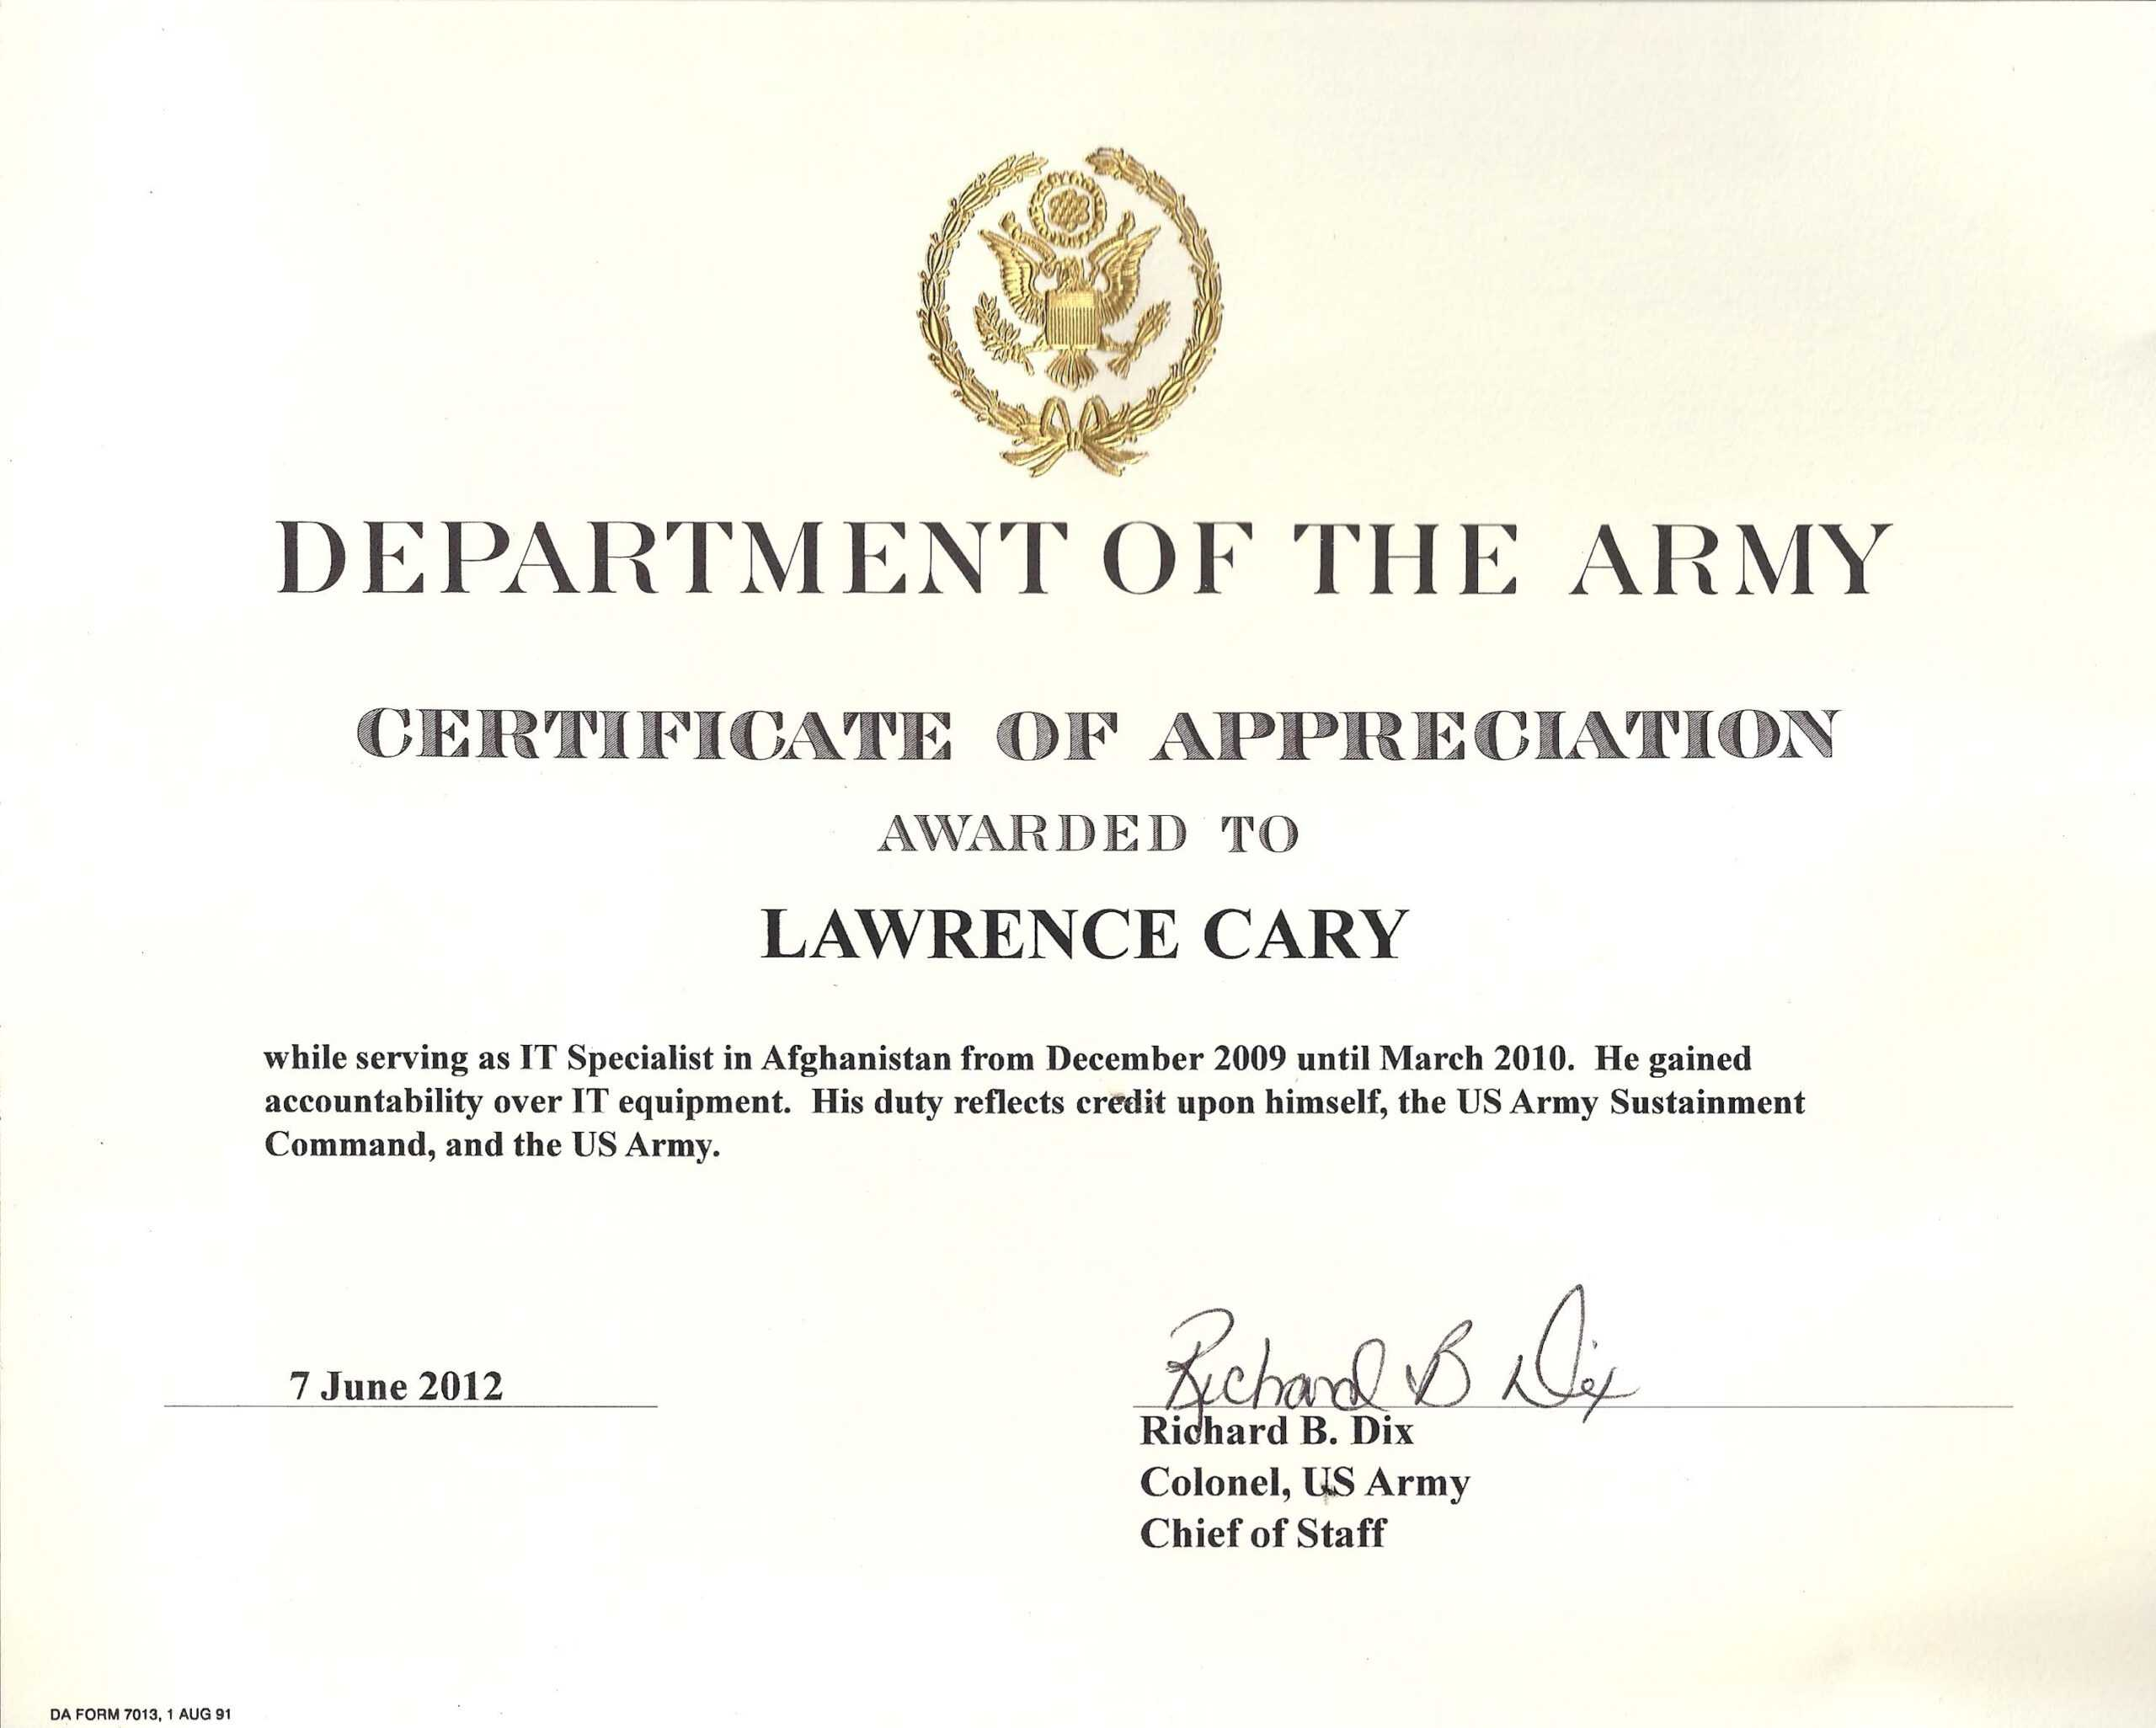 Army Certificate Of Completion Template - Atlantaauctionco Within Army Certificate Of Completion Template